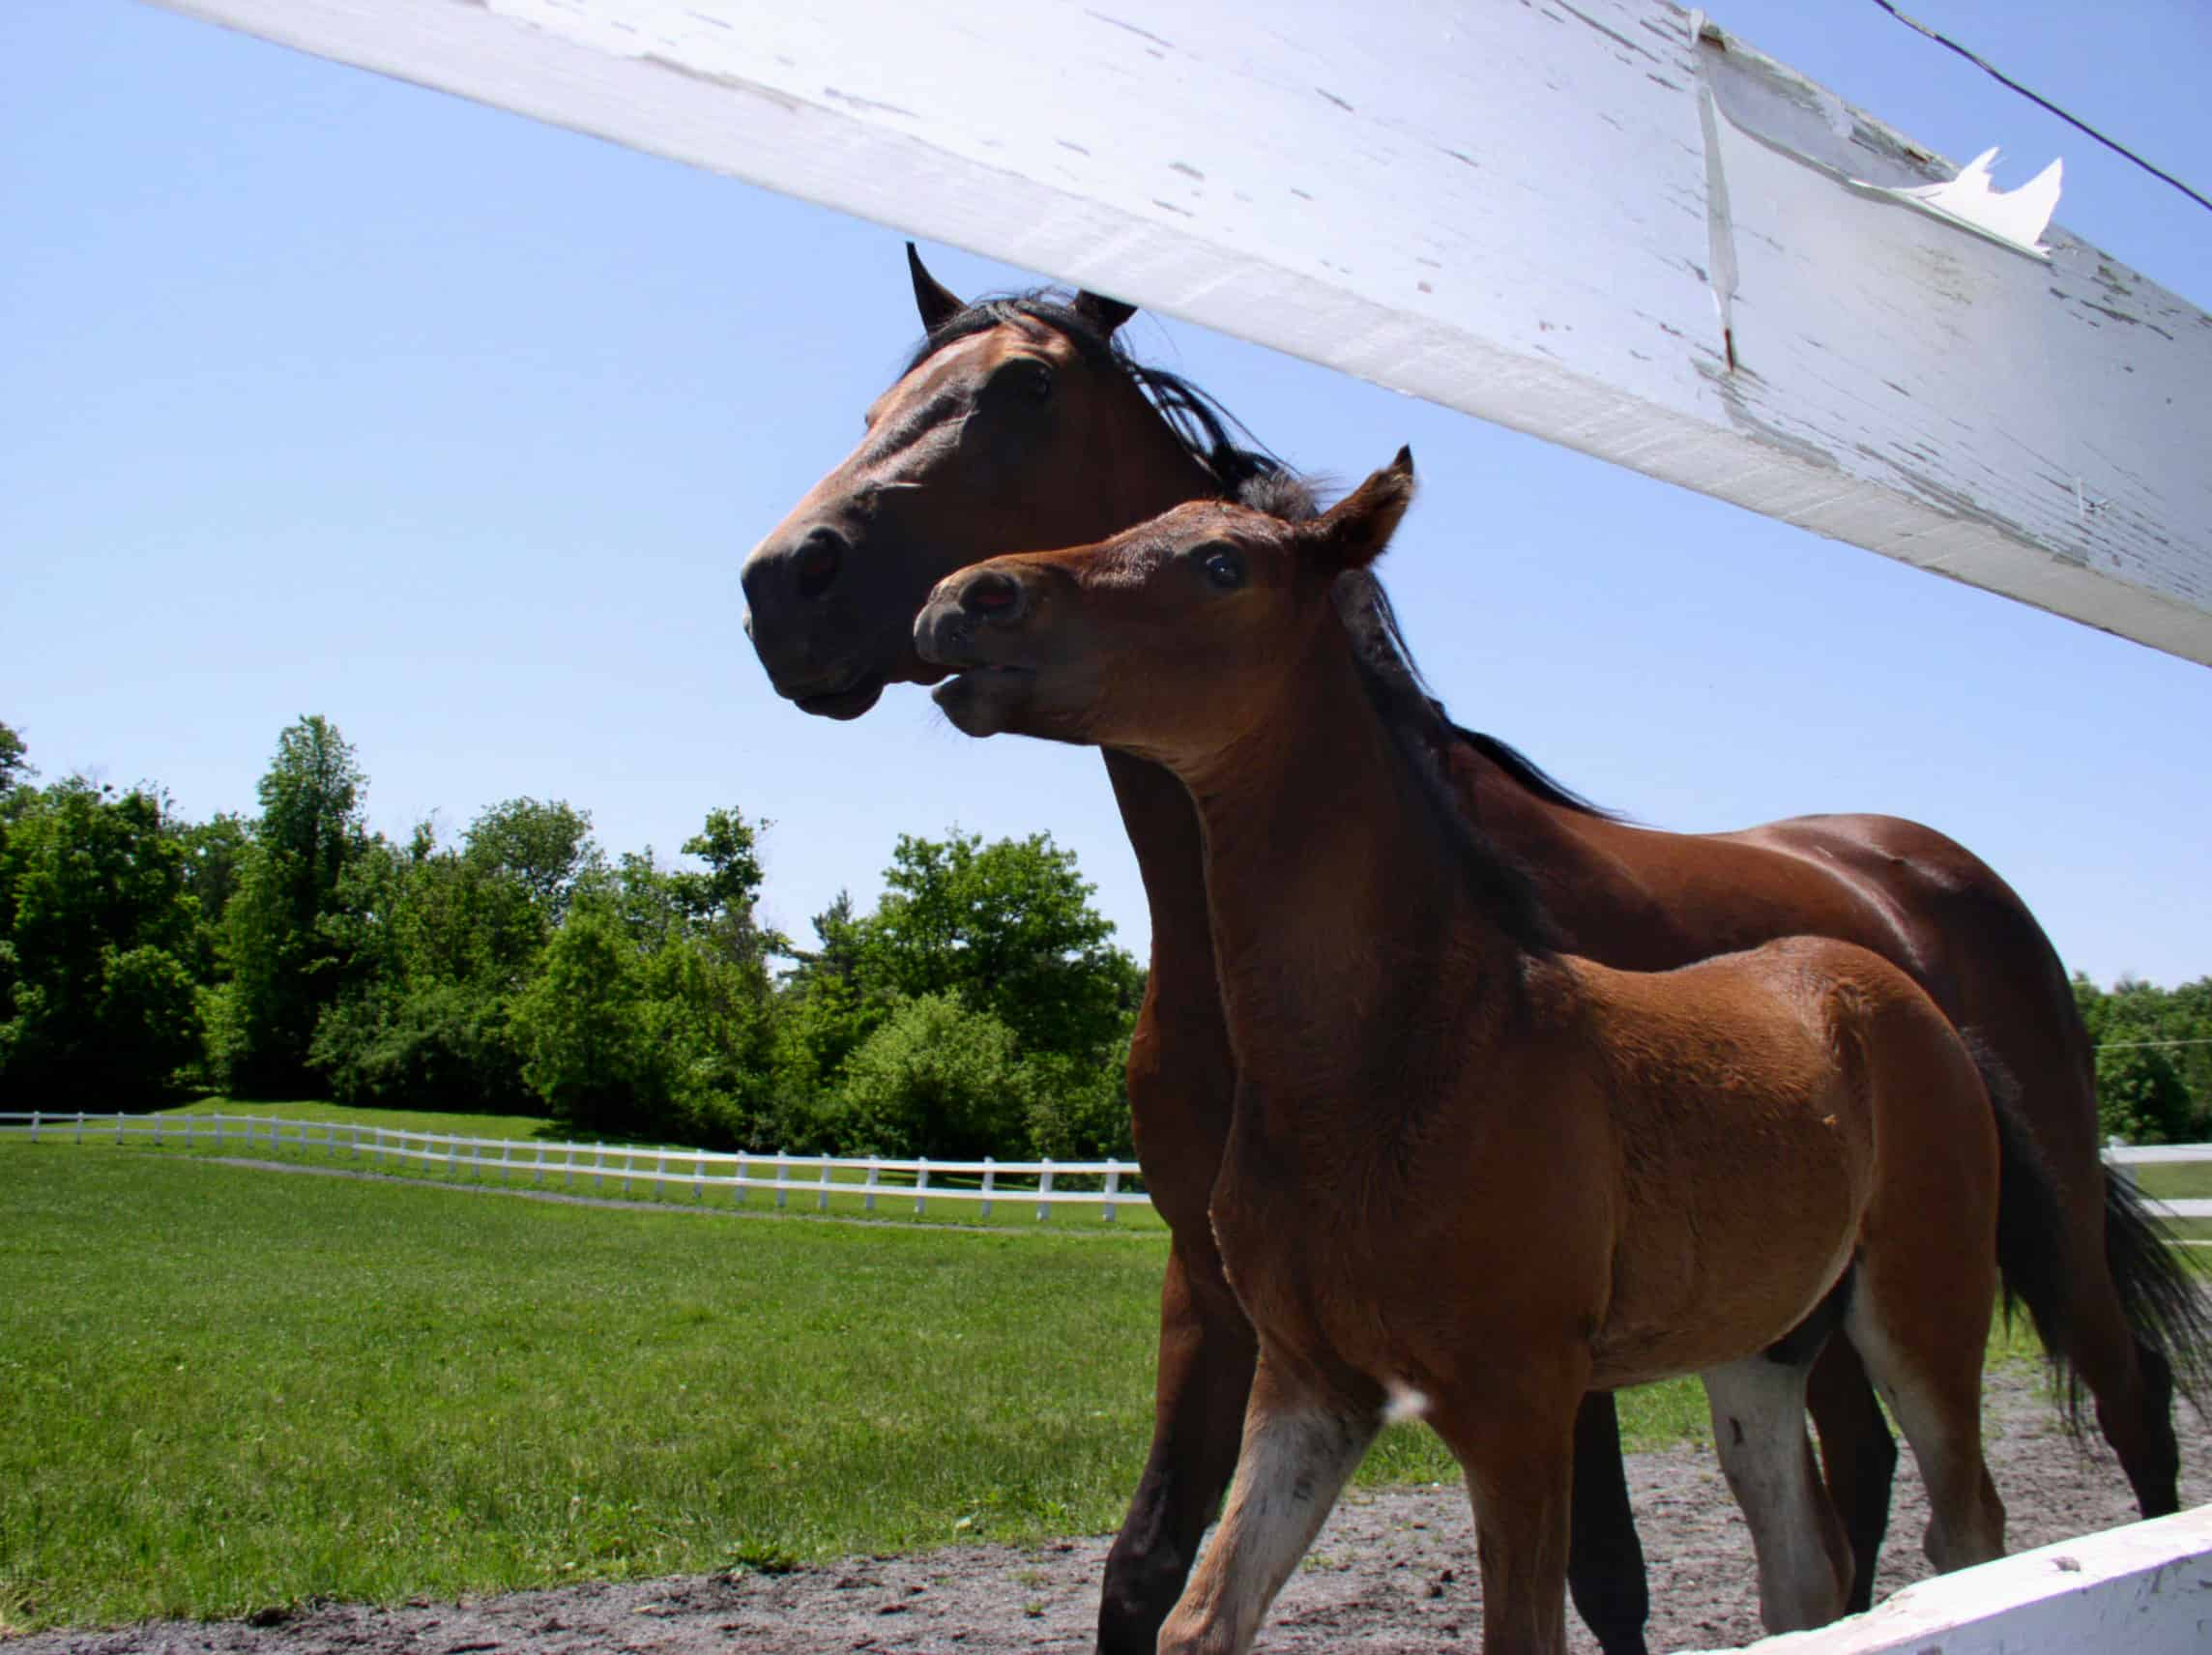 Two morgan horses, a mother and foal, run along the side of their paddock on a clear Vermont summer day.